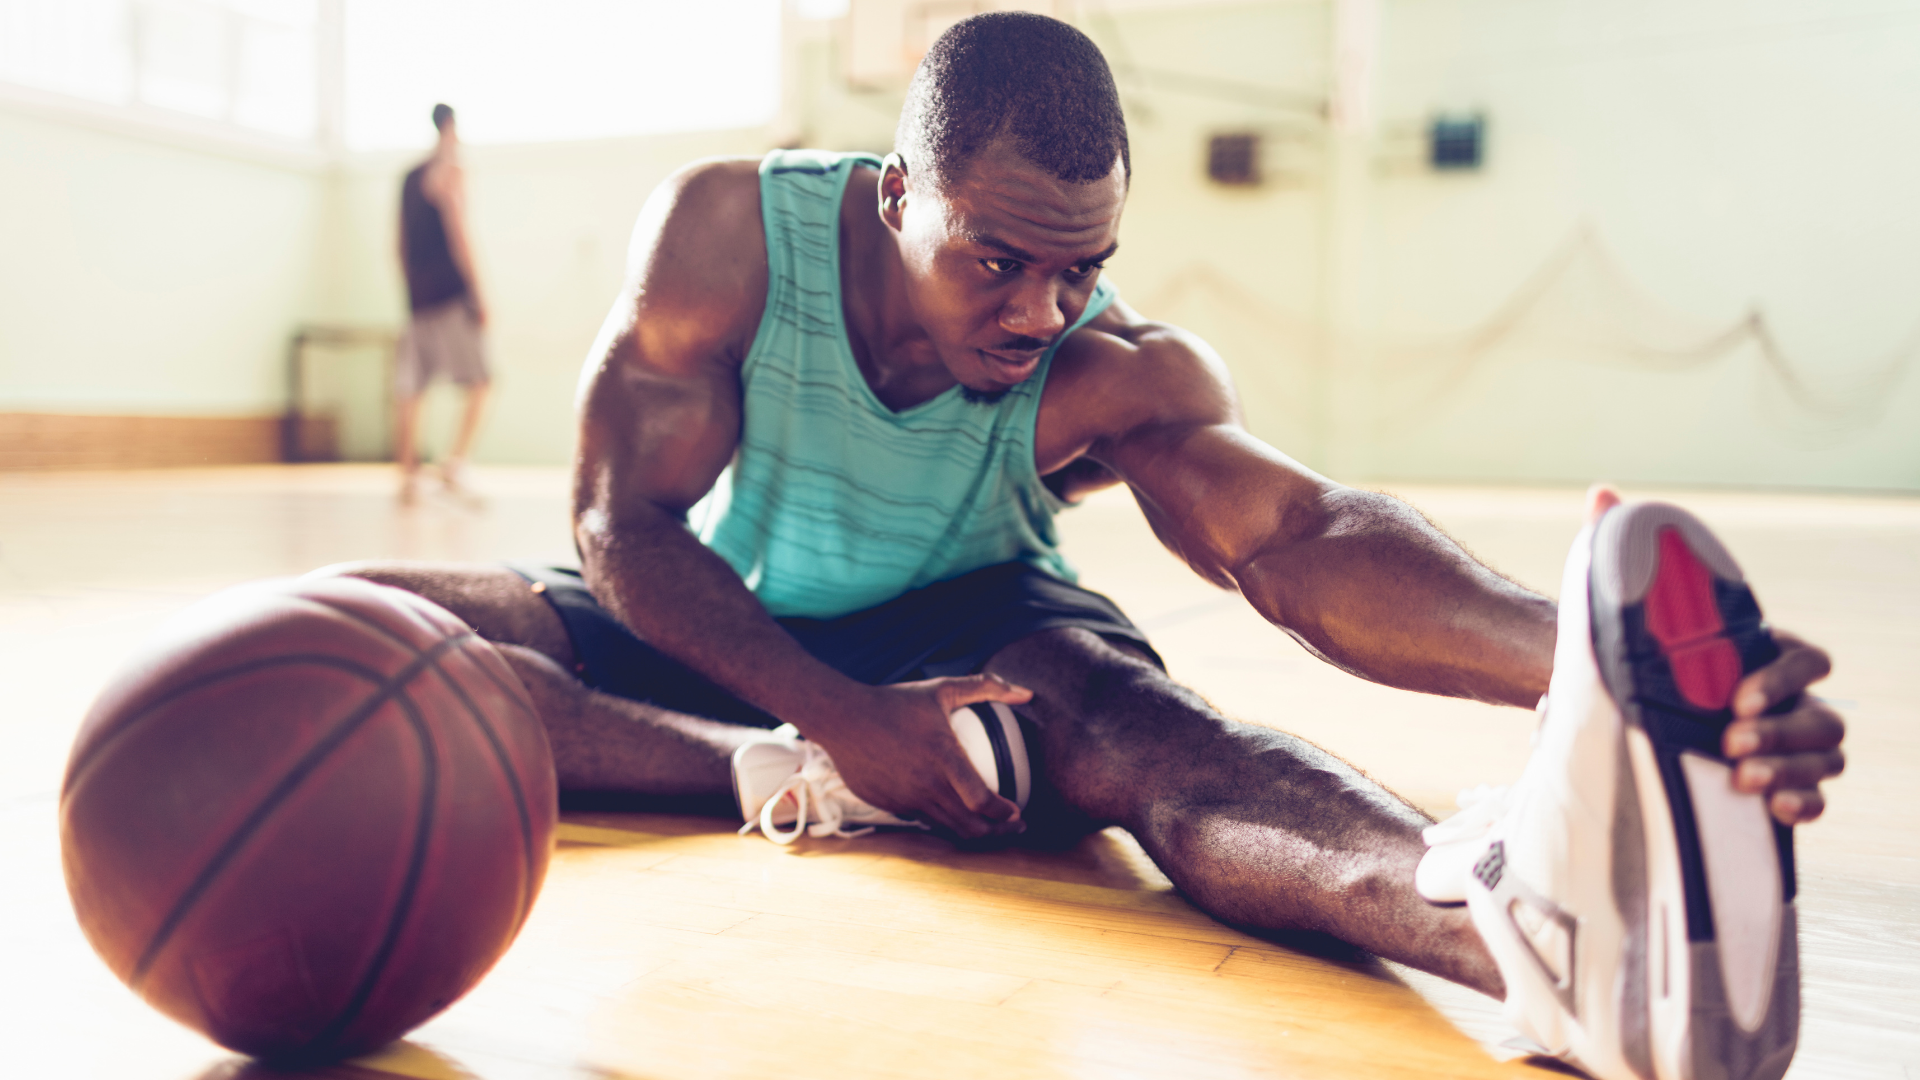 Stretching and mobility is integral to performing at the highest level